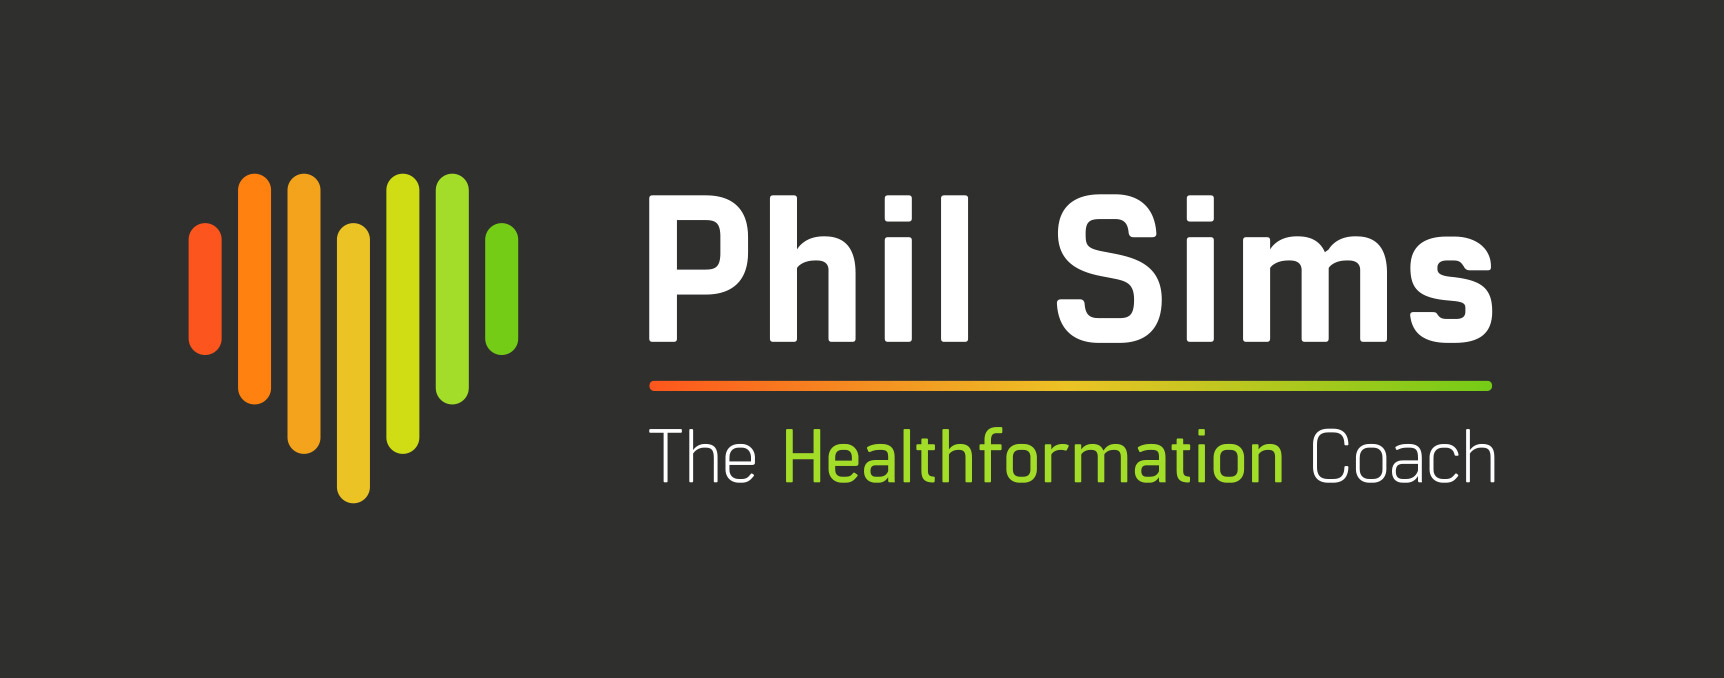 Phil Sims - The Healthformation Coach